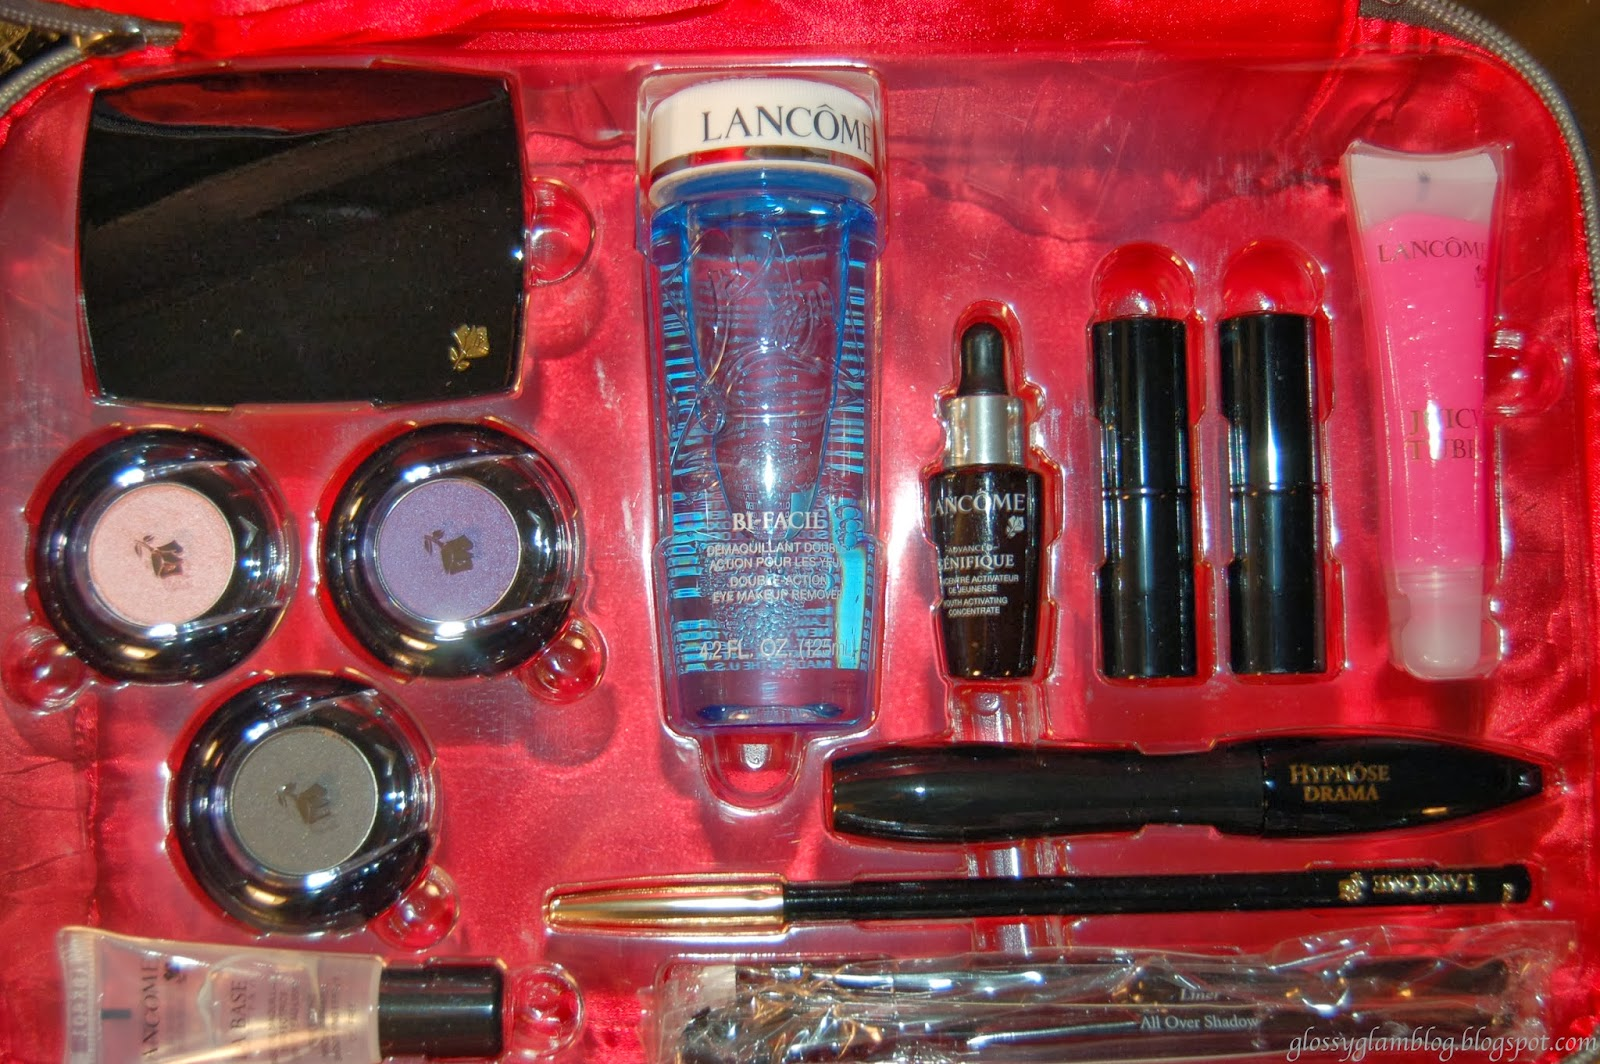 The story behind the purchase: I first bought this at a Macys. I honestly didn't need or really want anything from Lancome and so when I saw that you could ...